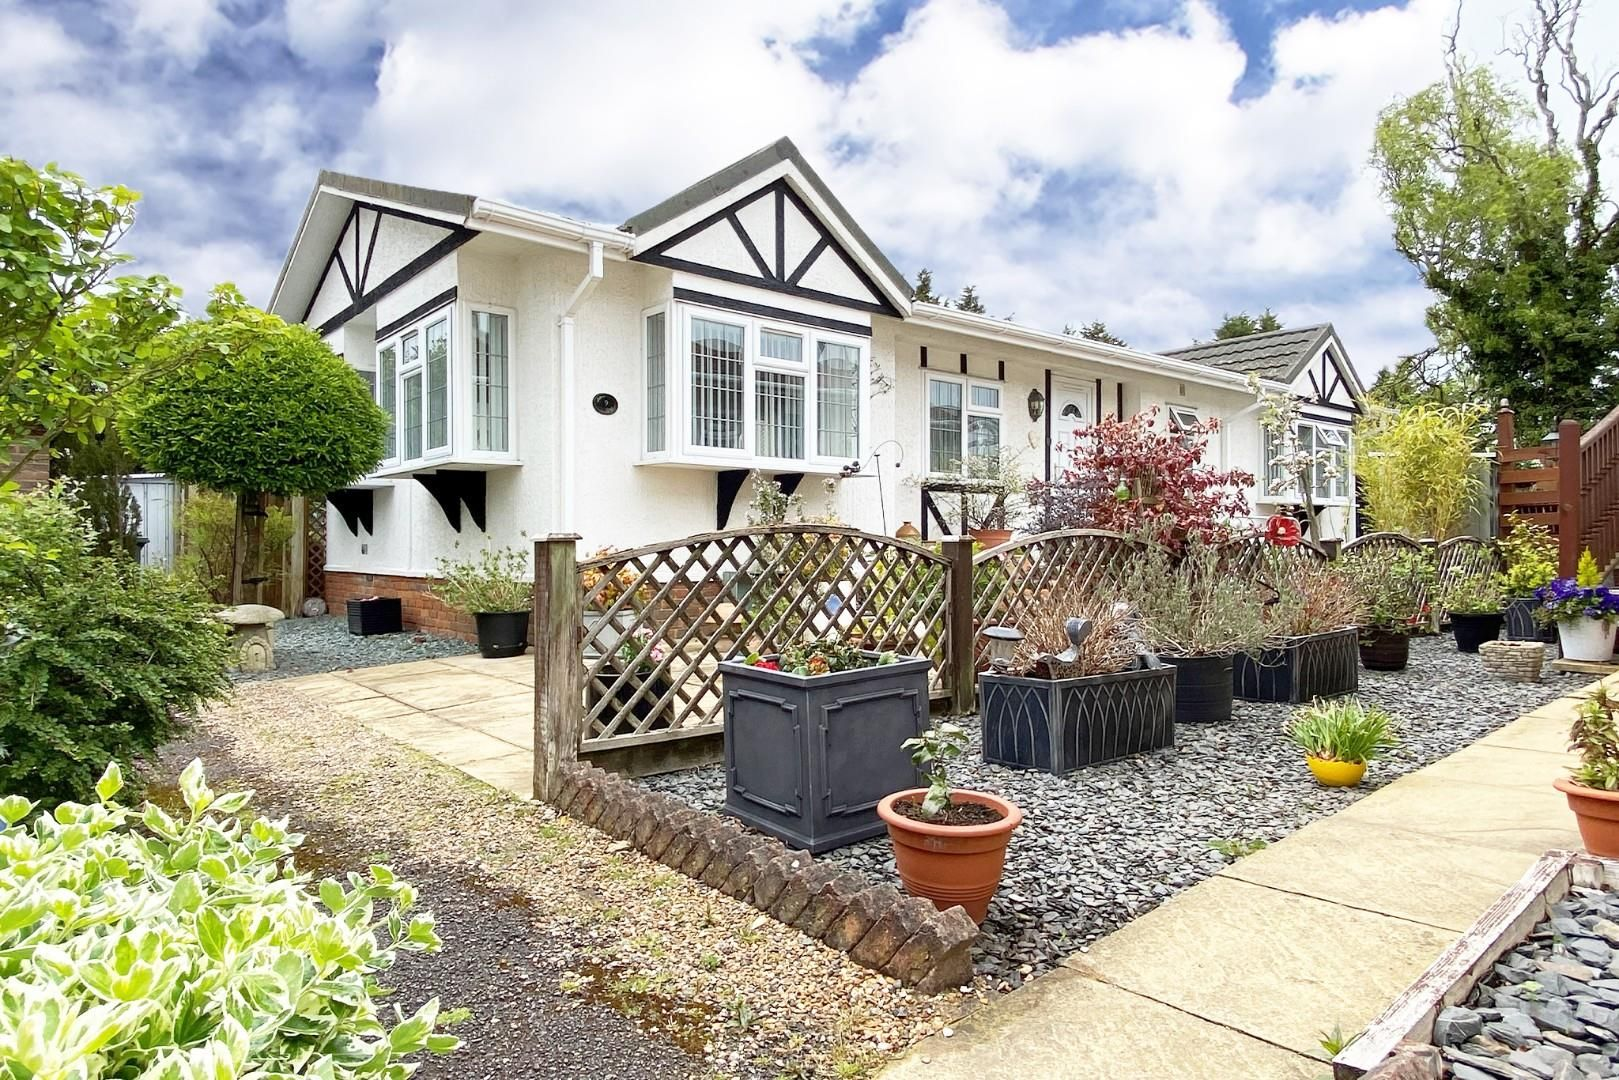 2 bed house for sale in Winkfield, SL4